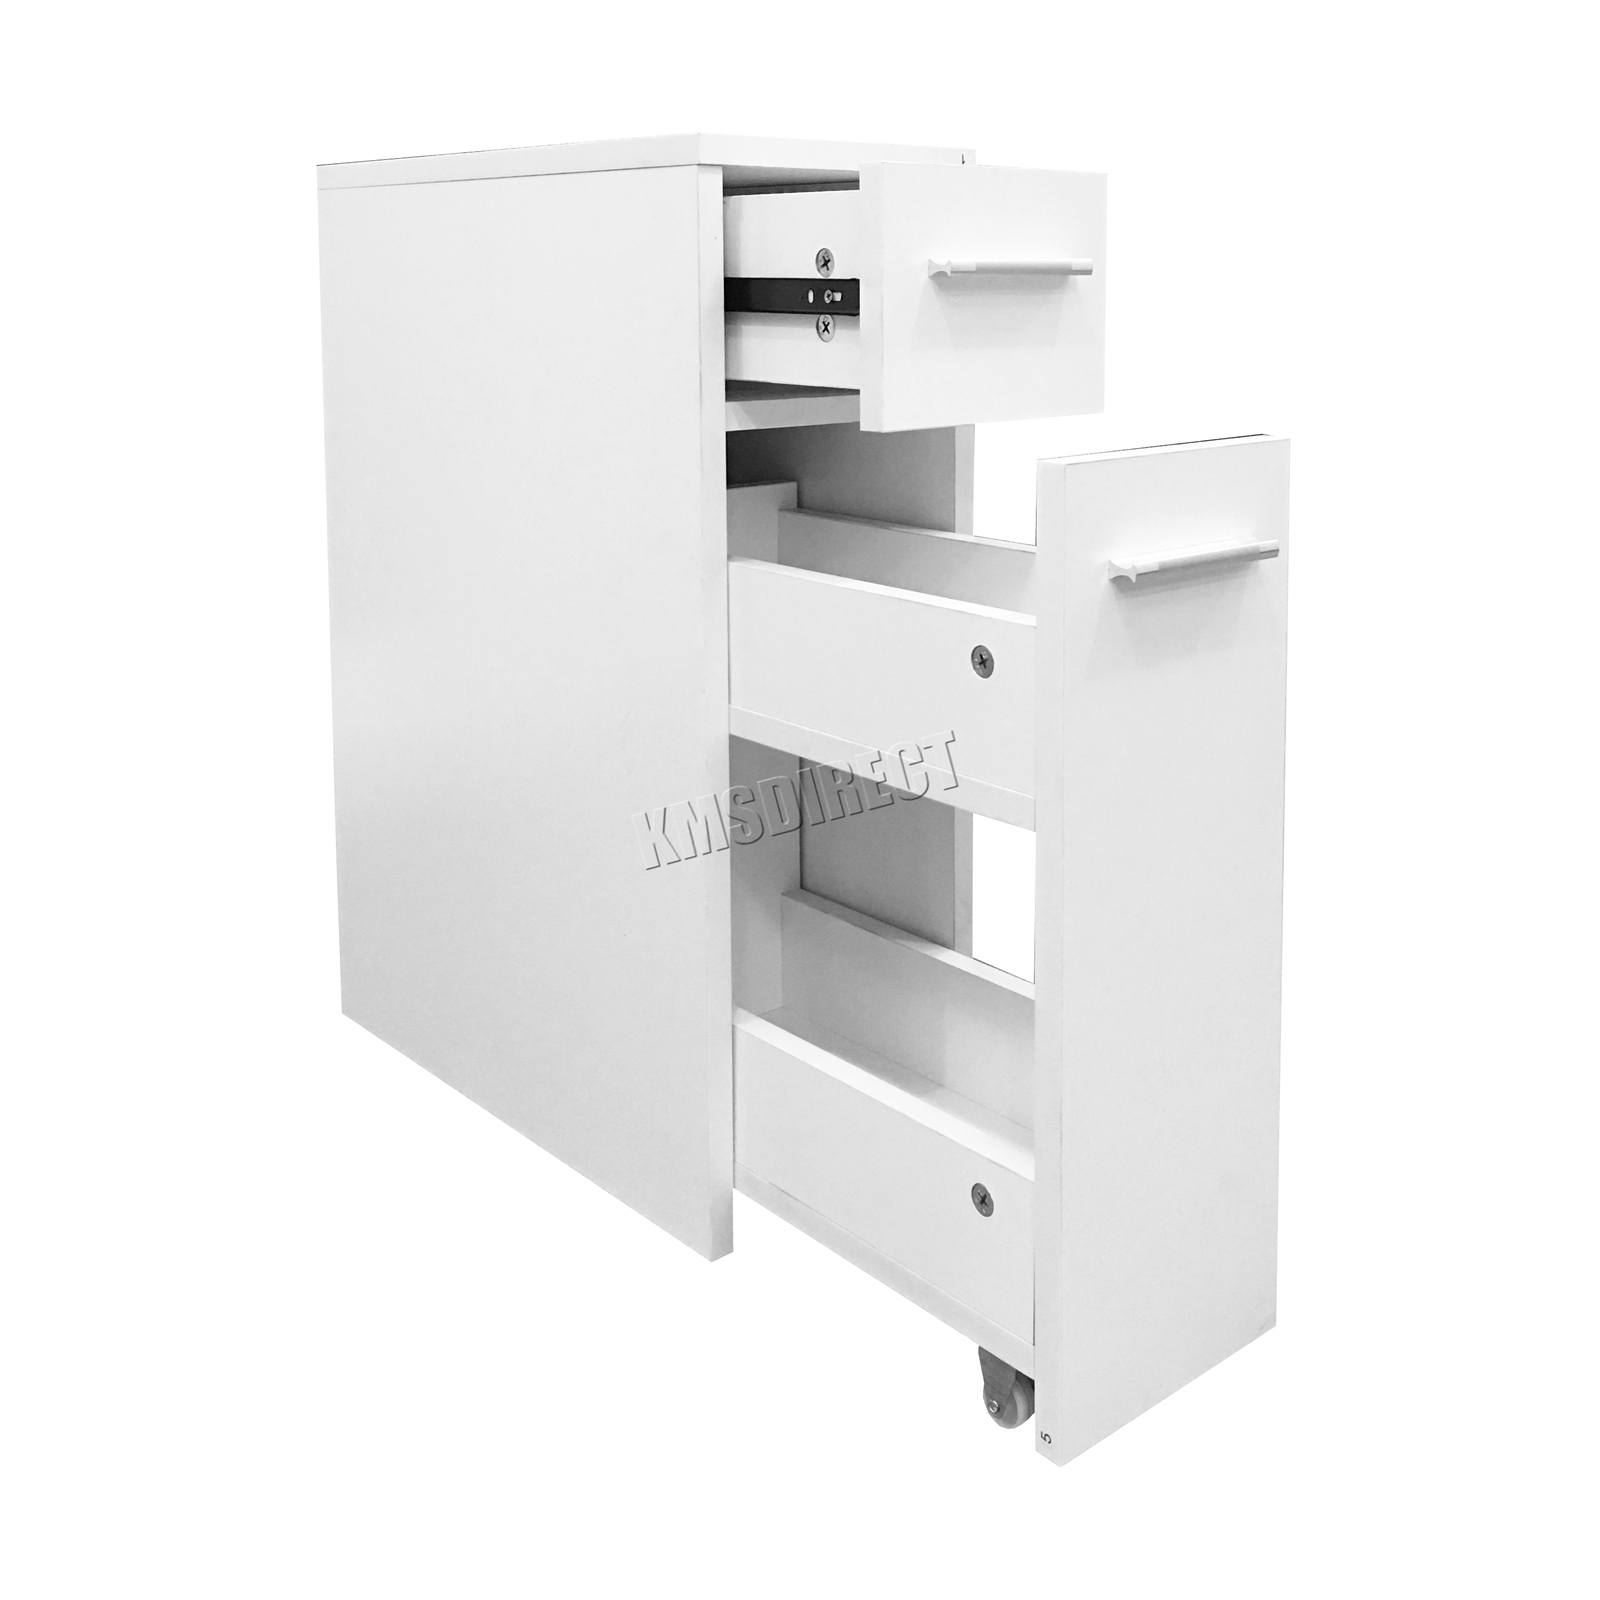 Details About Westwood Slimline Bathroom Slide Out Storage Drawer Cabinet Cupboard Unit White intended for proportions 1600 X 1600